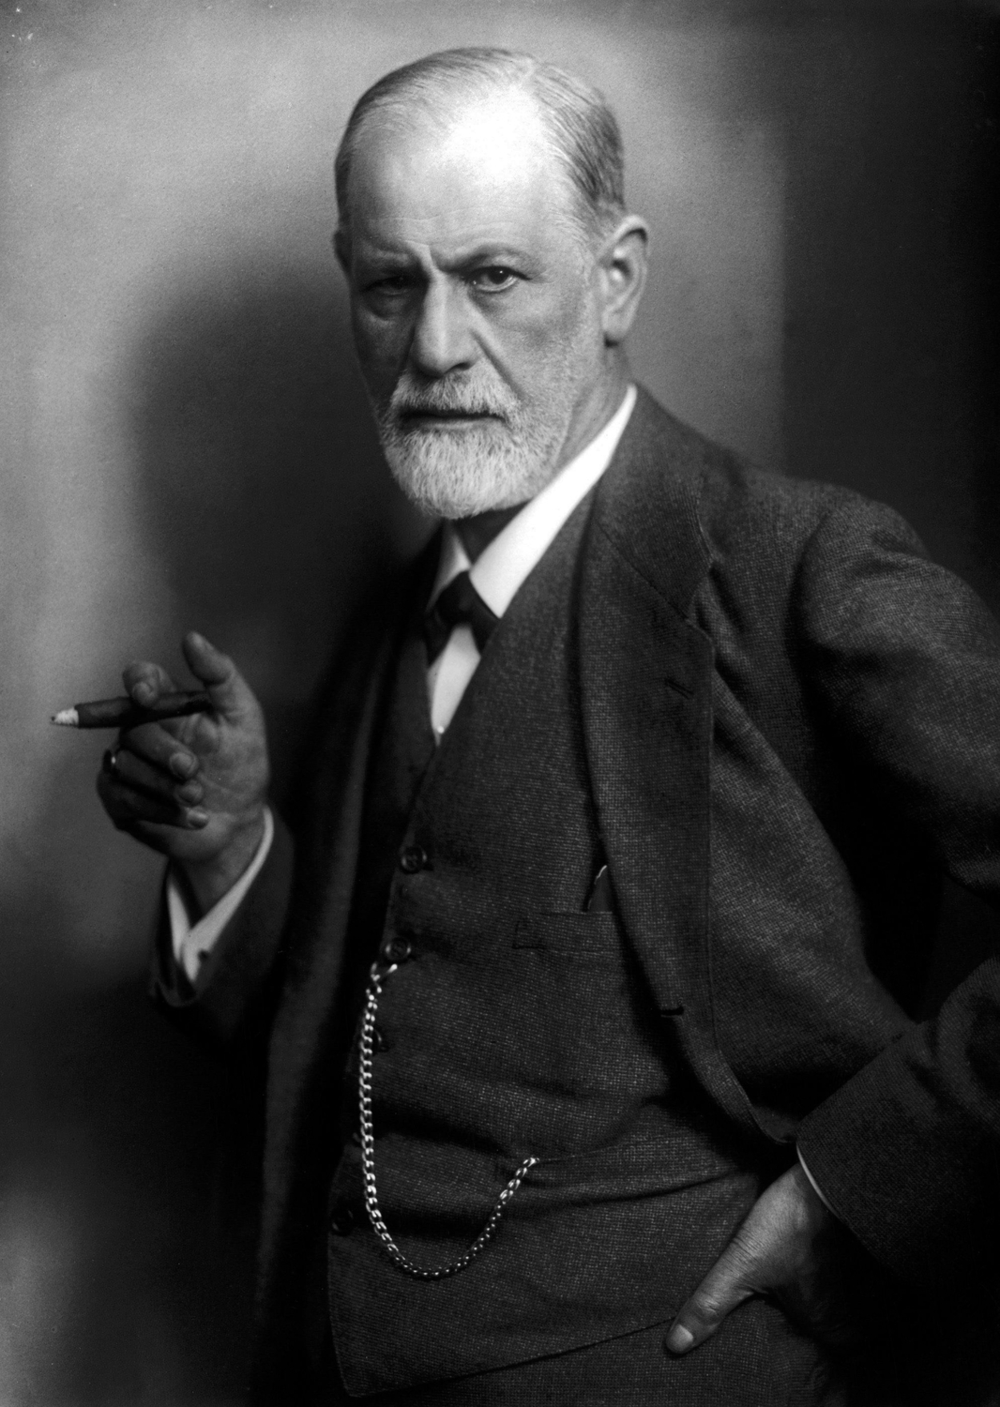 https://upload.wikimedia.org/wikipedia/commons/1/12/Sigmund_Freud_LIFE.jpg